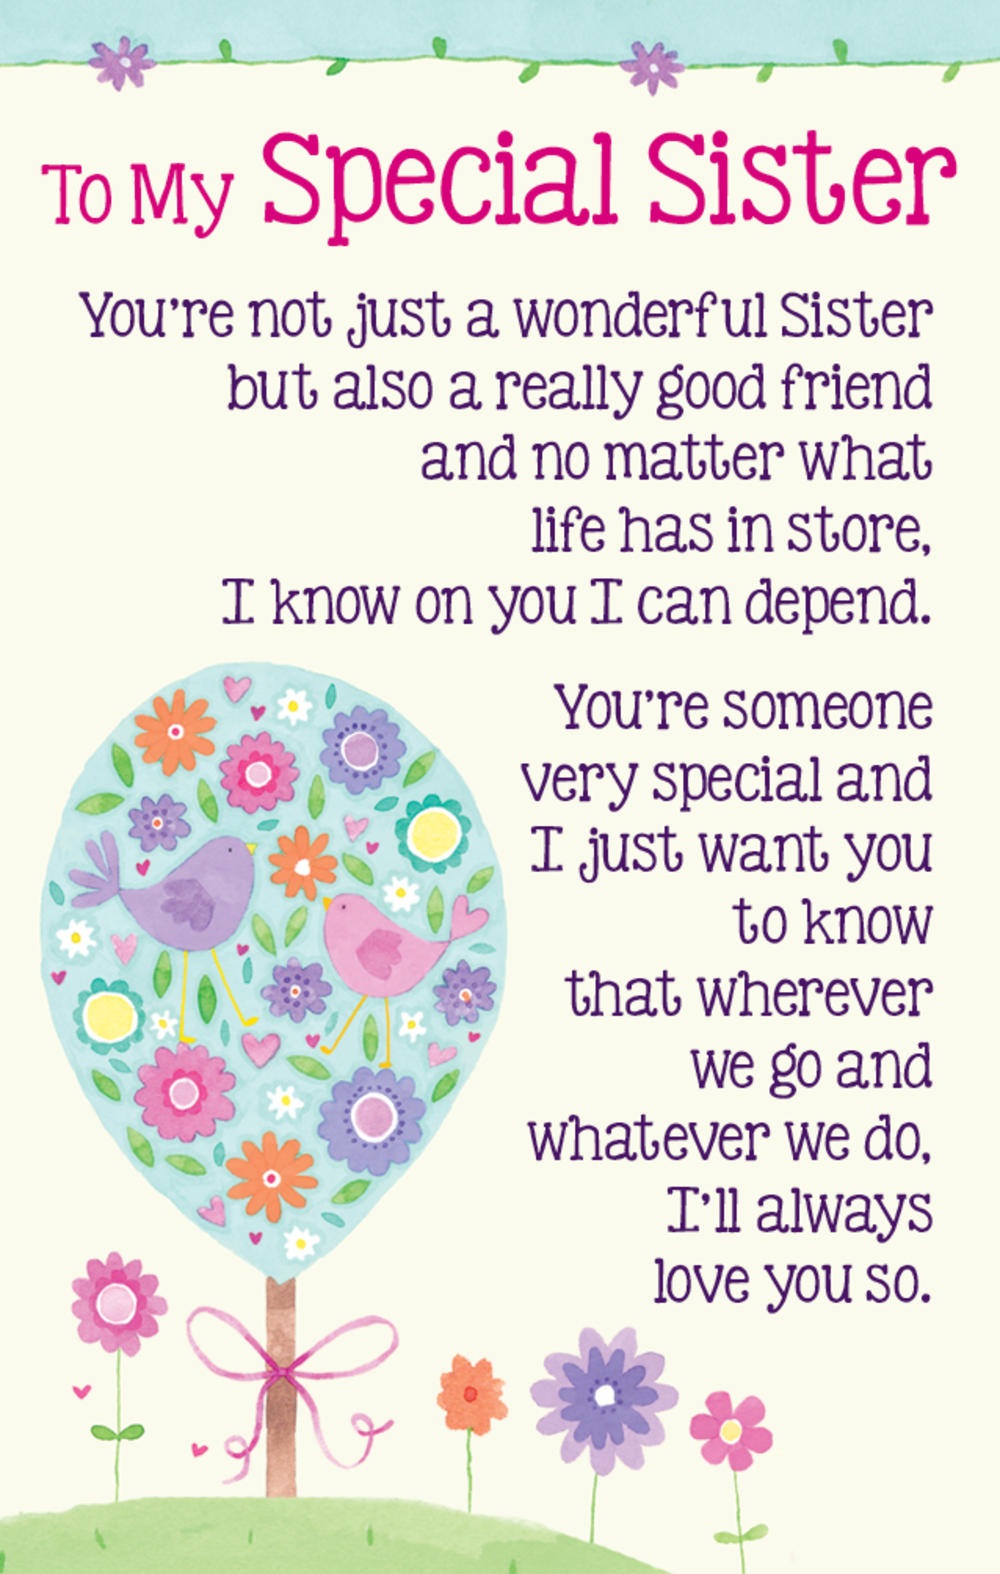 To My Special Sister Heartwarmers Keepsake Credit Card & Envelope ...